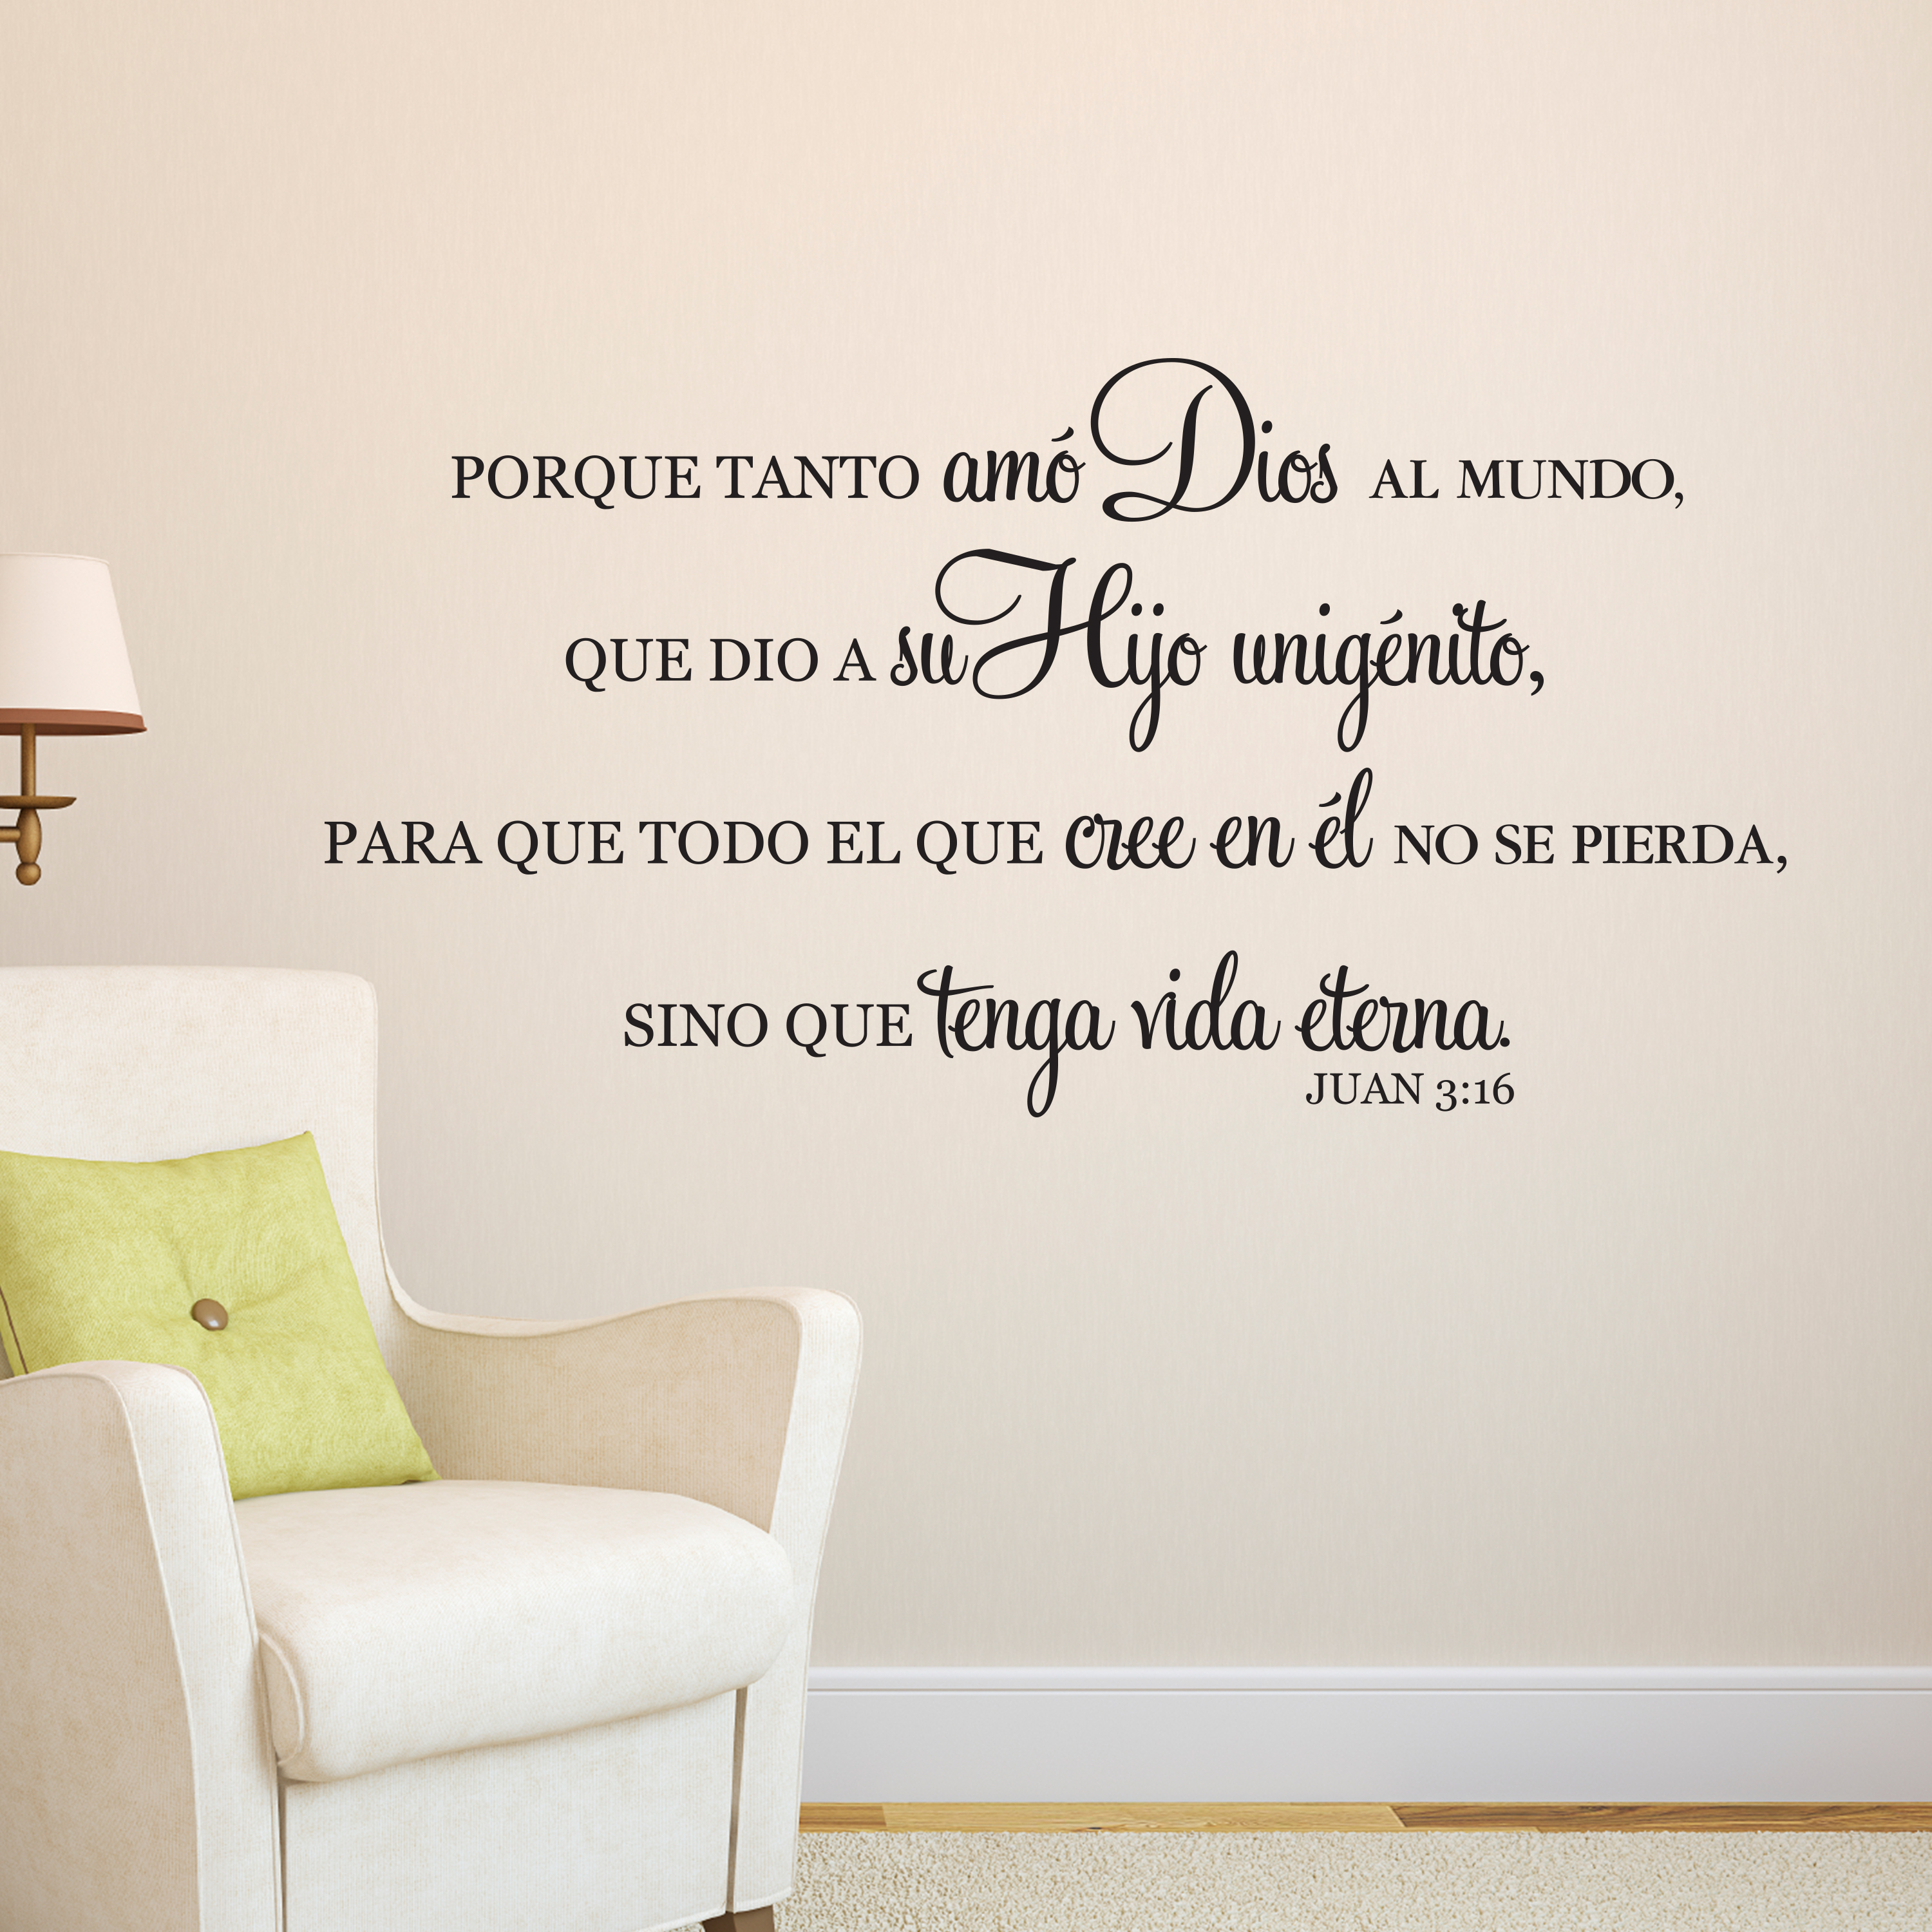 For god so loved the world archives john 316 vinyl wall decal 3 spanish by wild eyes signs porque tanto am dios for god so loved the world scripture bible verse christian wall words amipublicfo Choice Image